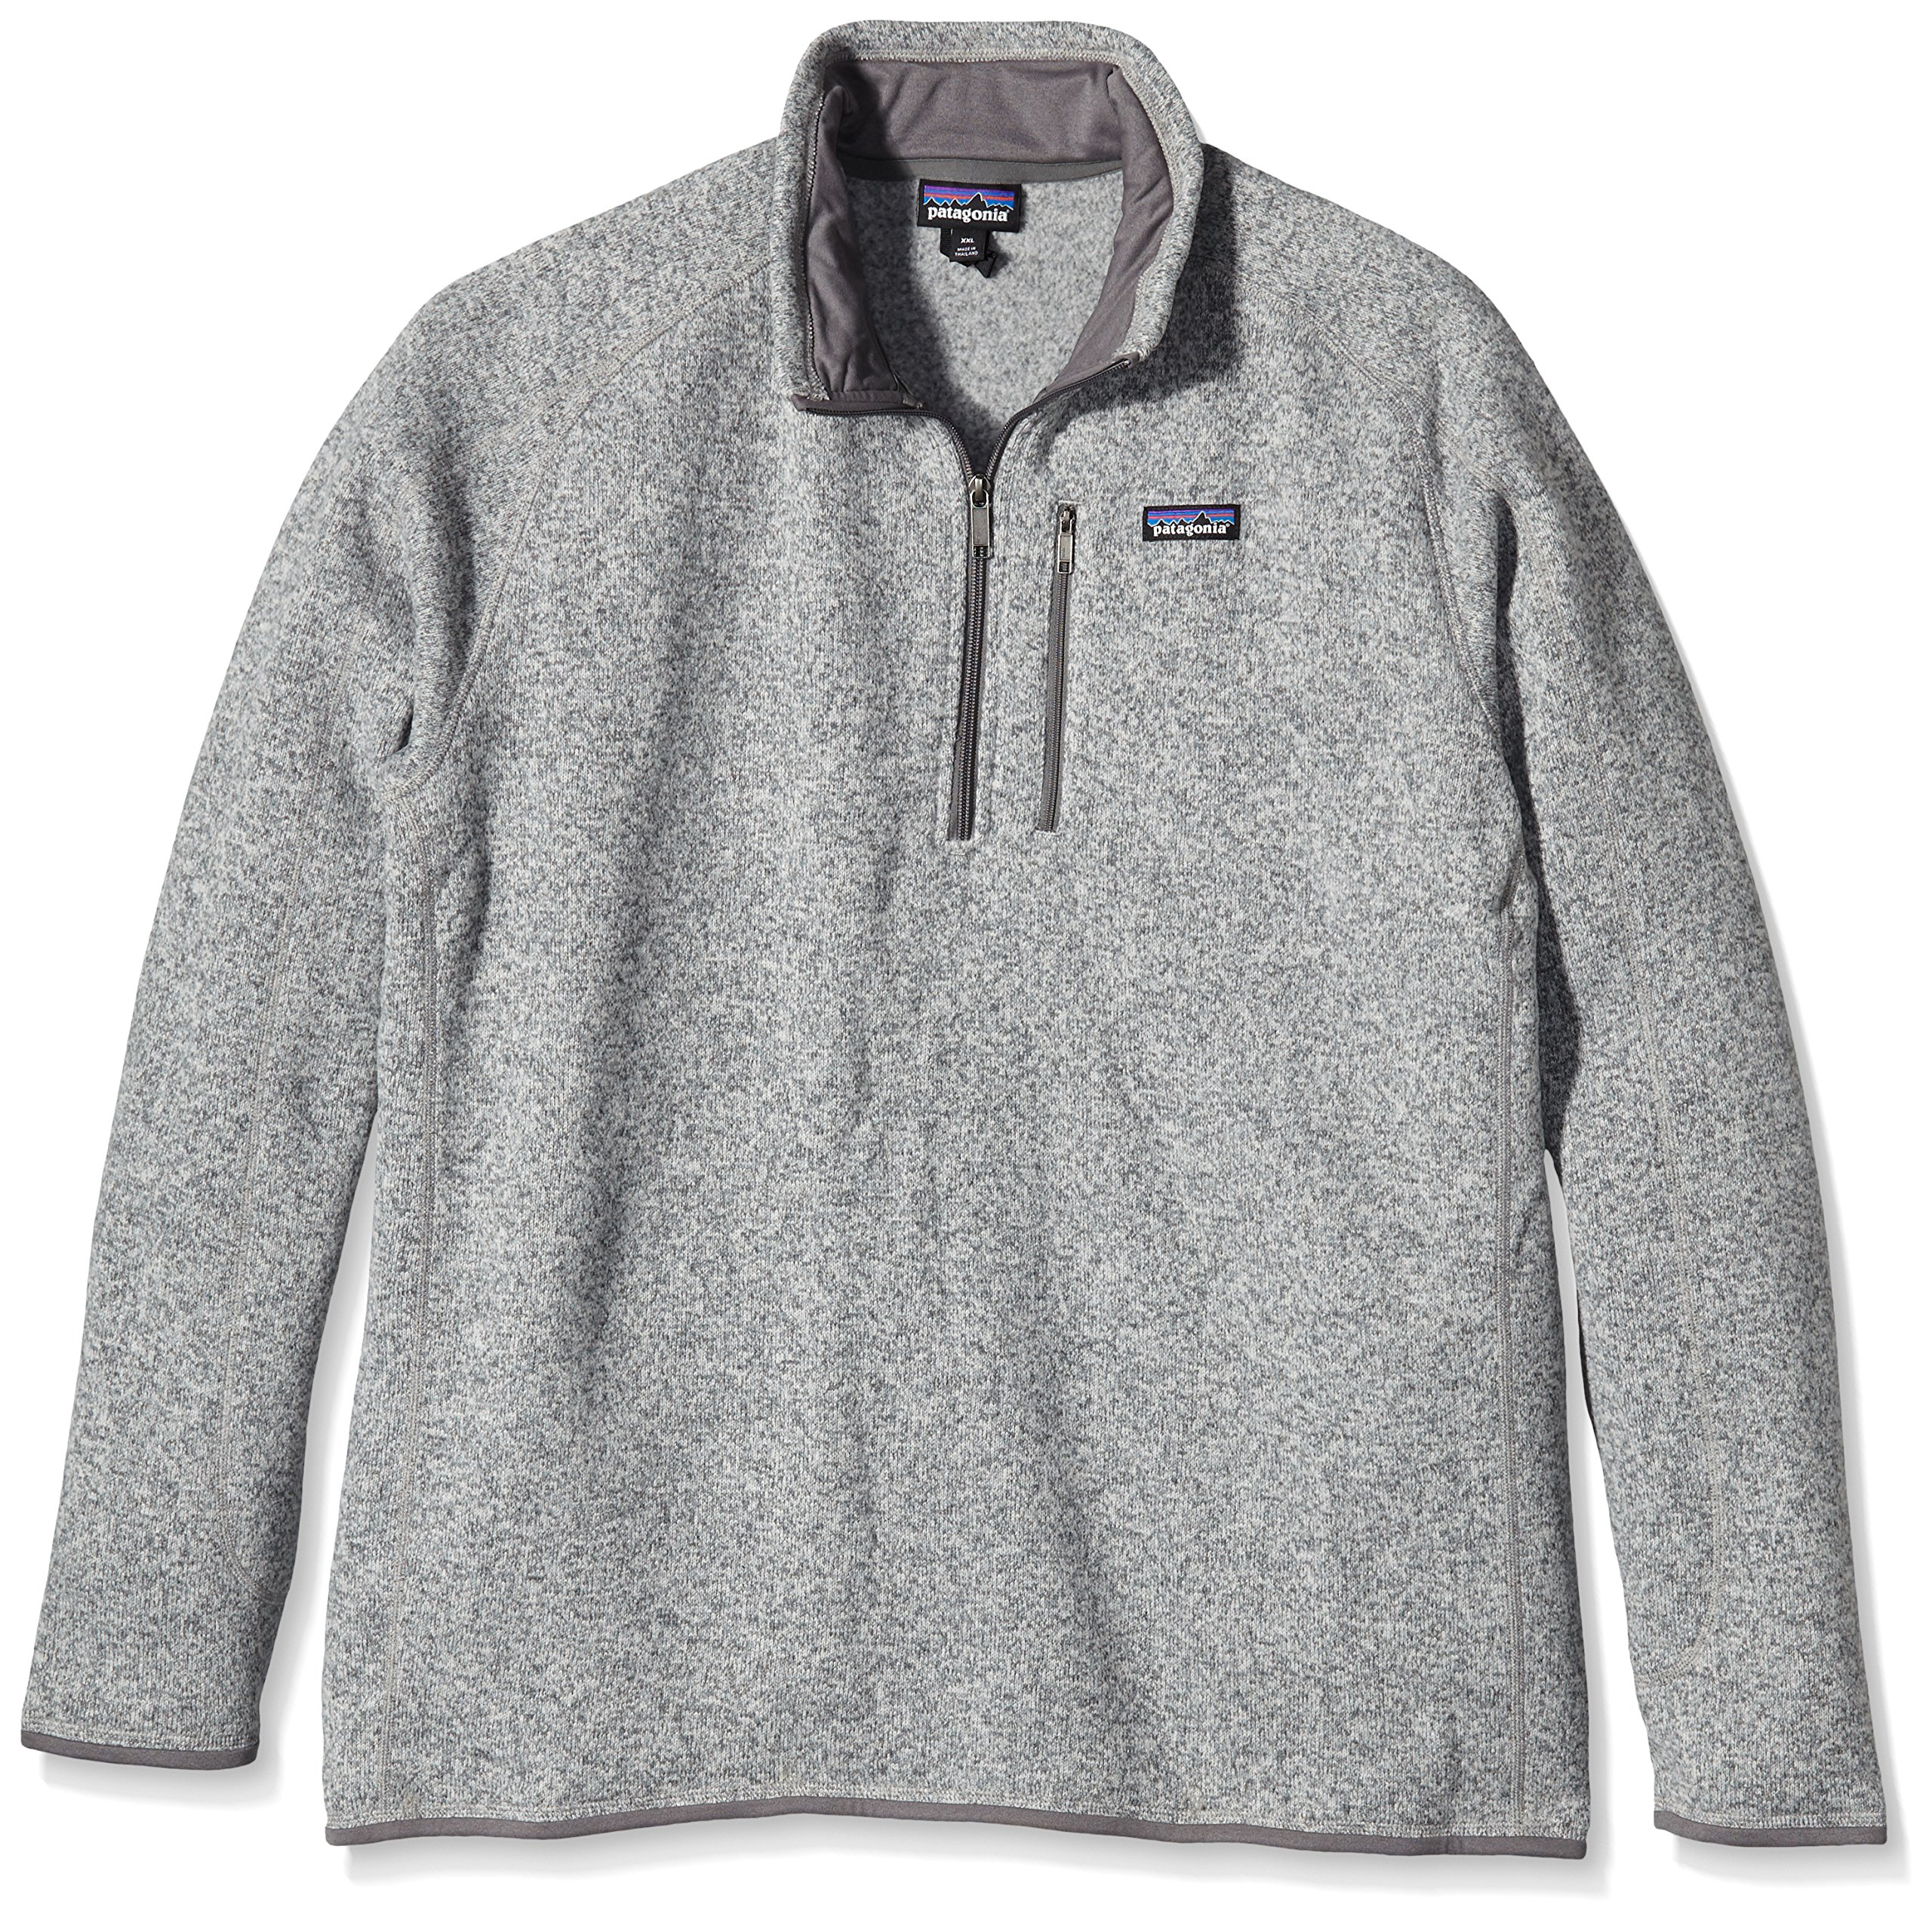 Patagonia Mens Better Sweater 1/4 Zip (Small, Stonewash) by Patagonia